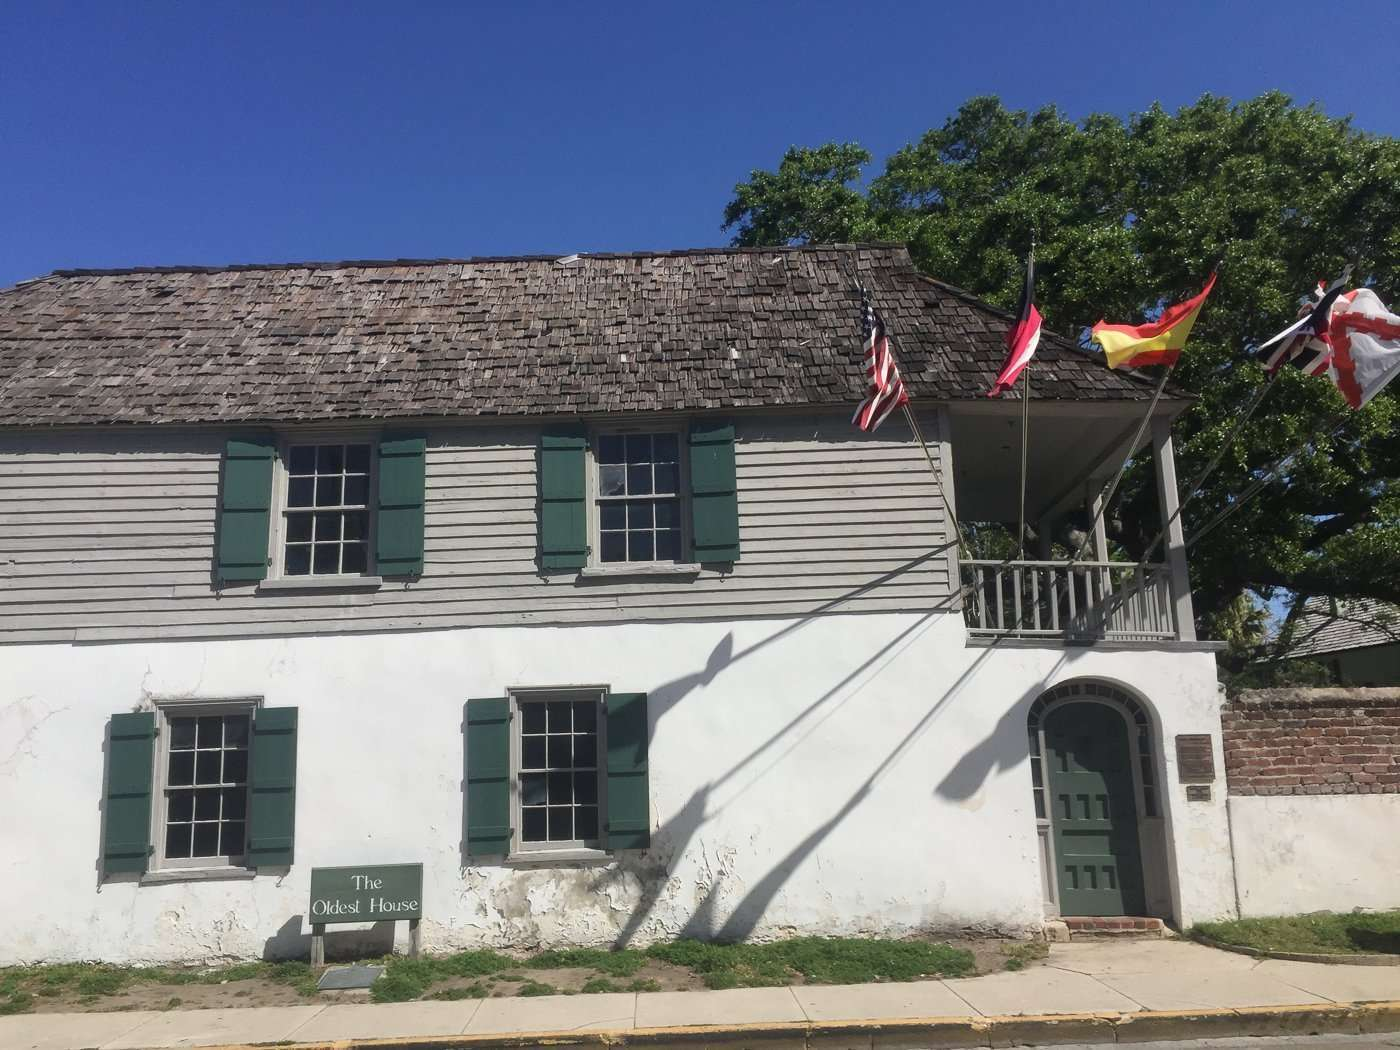 The Oldest House in St. Augustine, part of St. Augustine's Living History